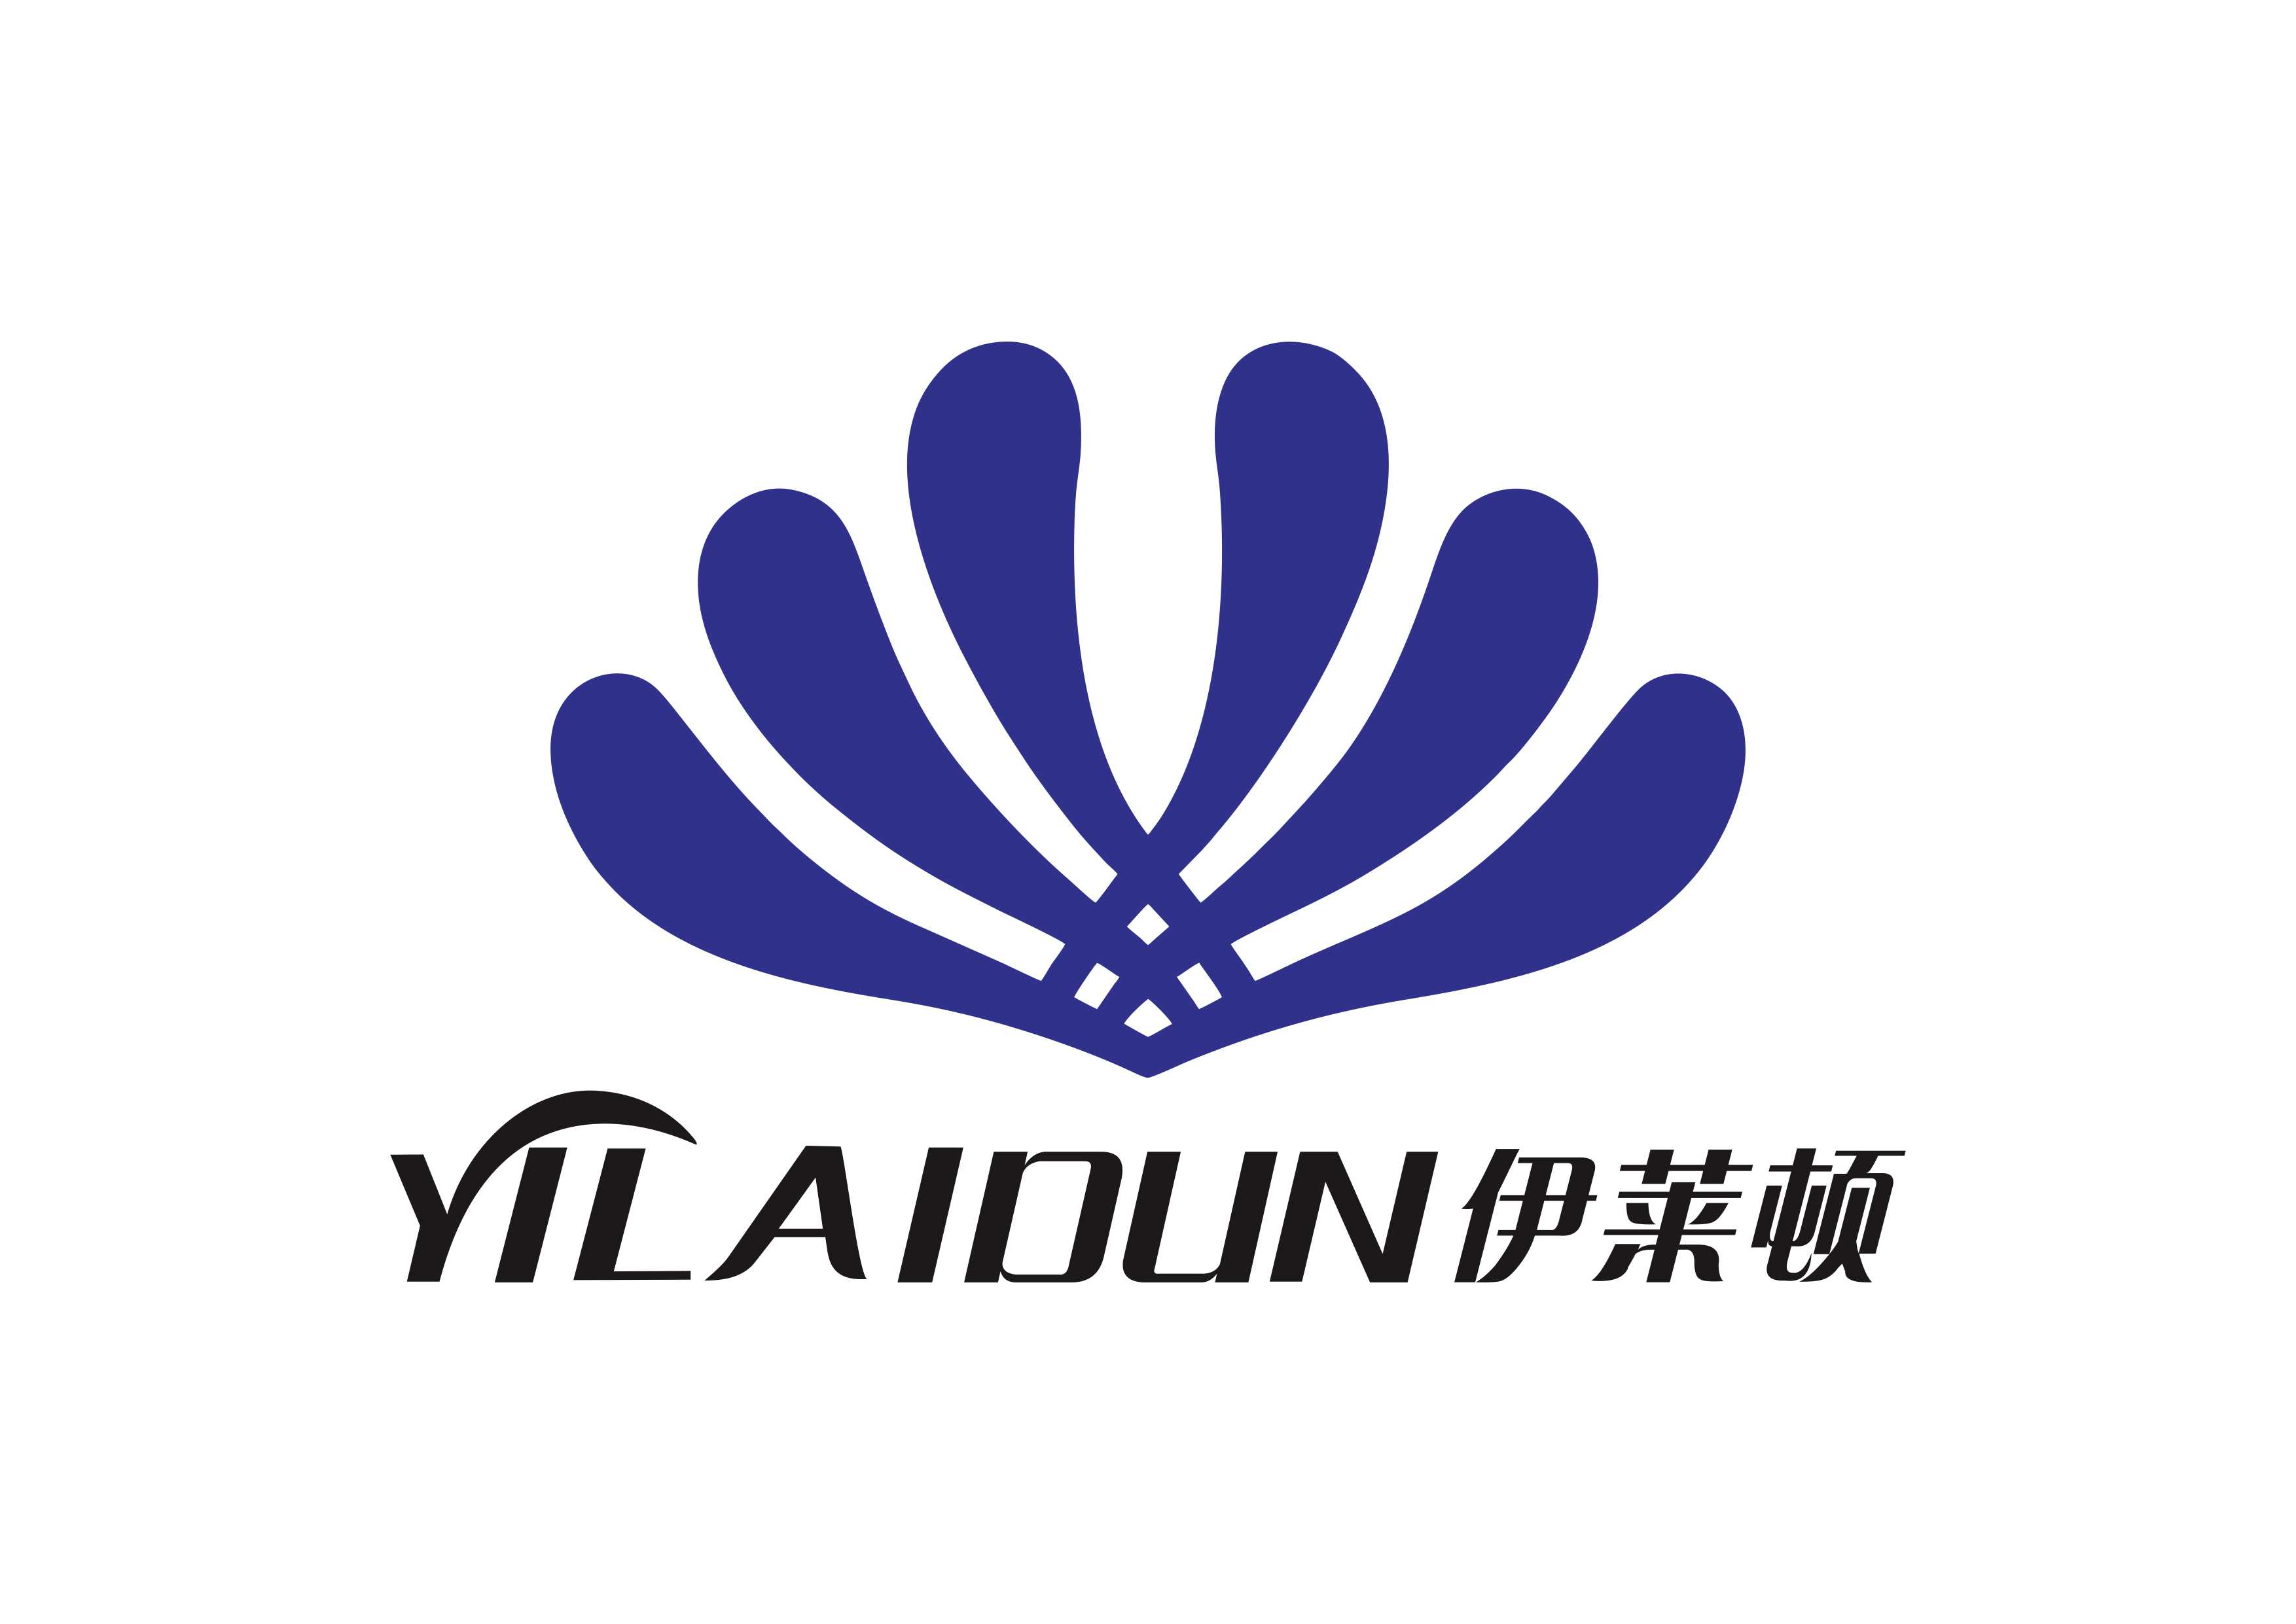 LIANJIANG YILAIDUN ELECTRIC APPLIANCES INDUSTRY CO.,LTD